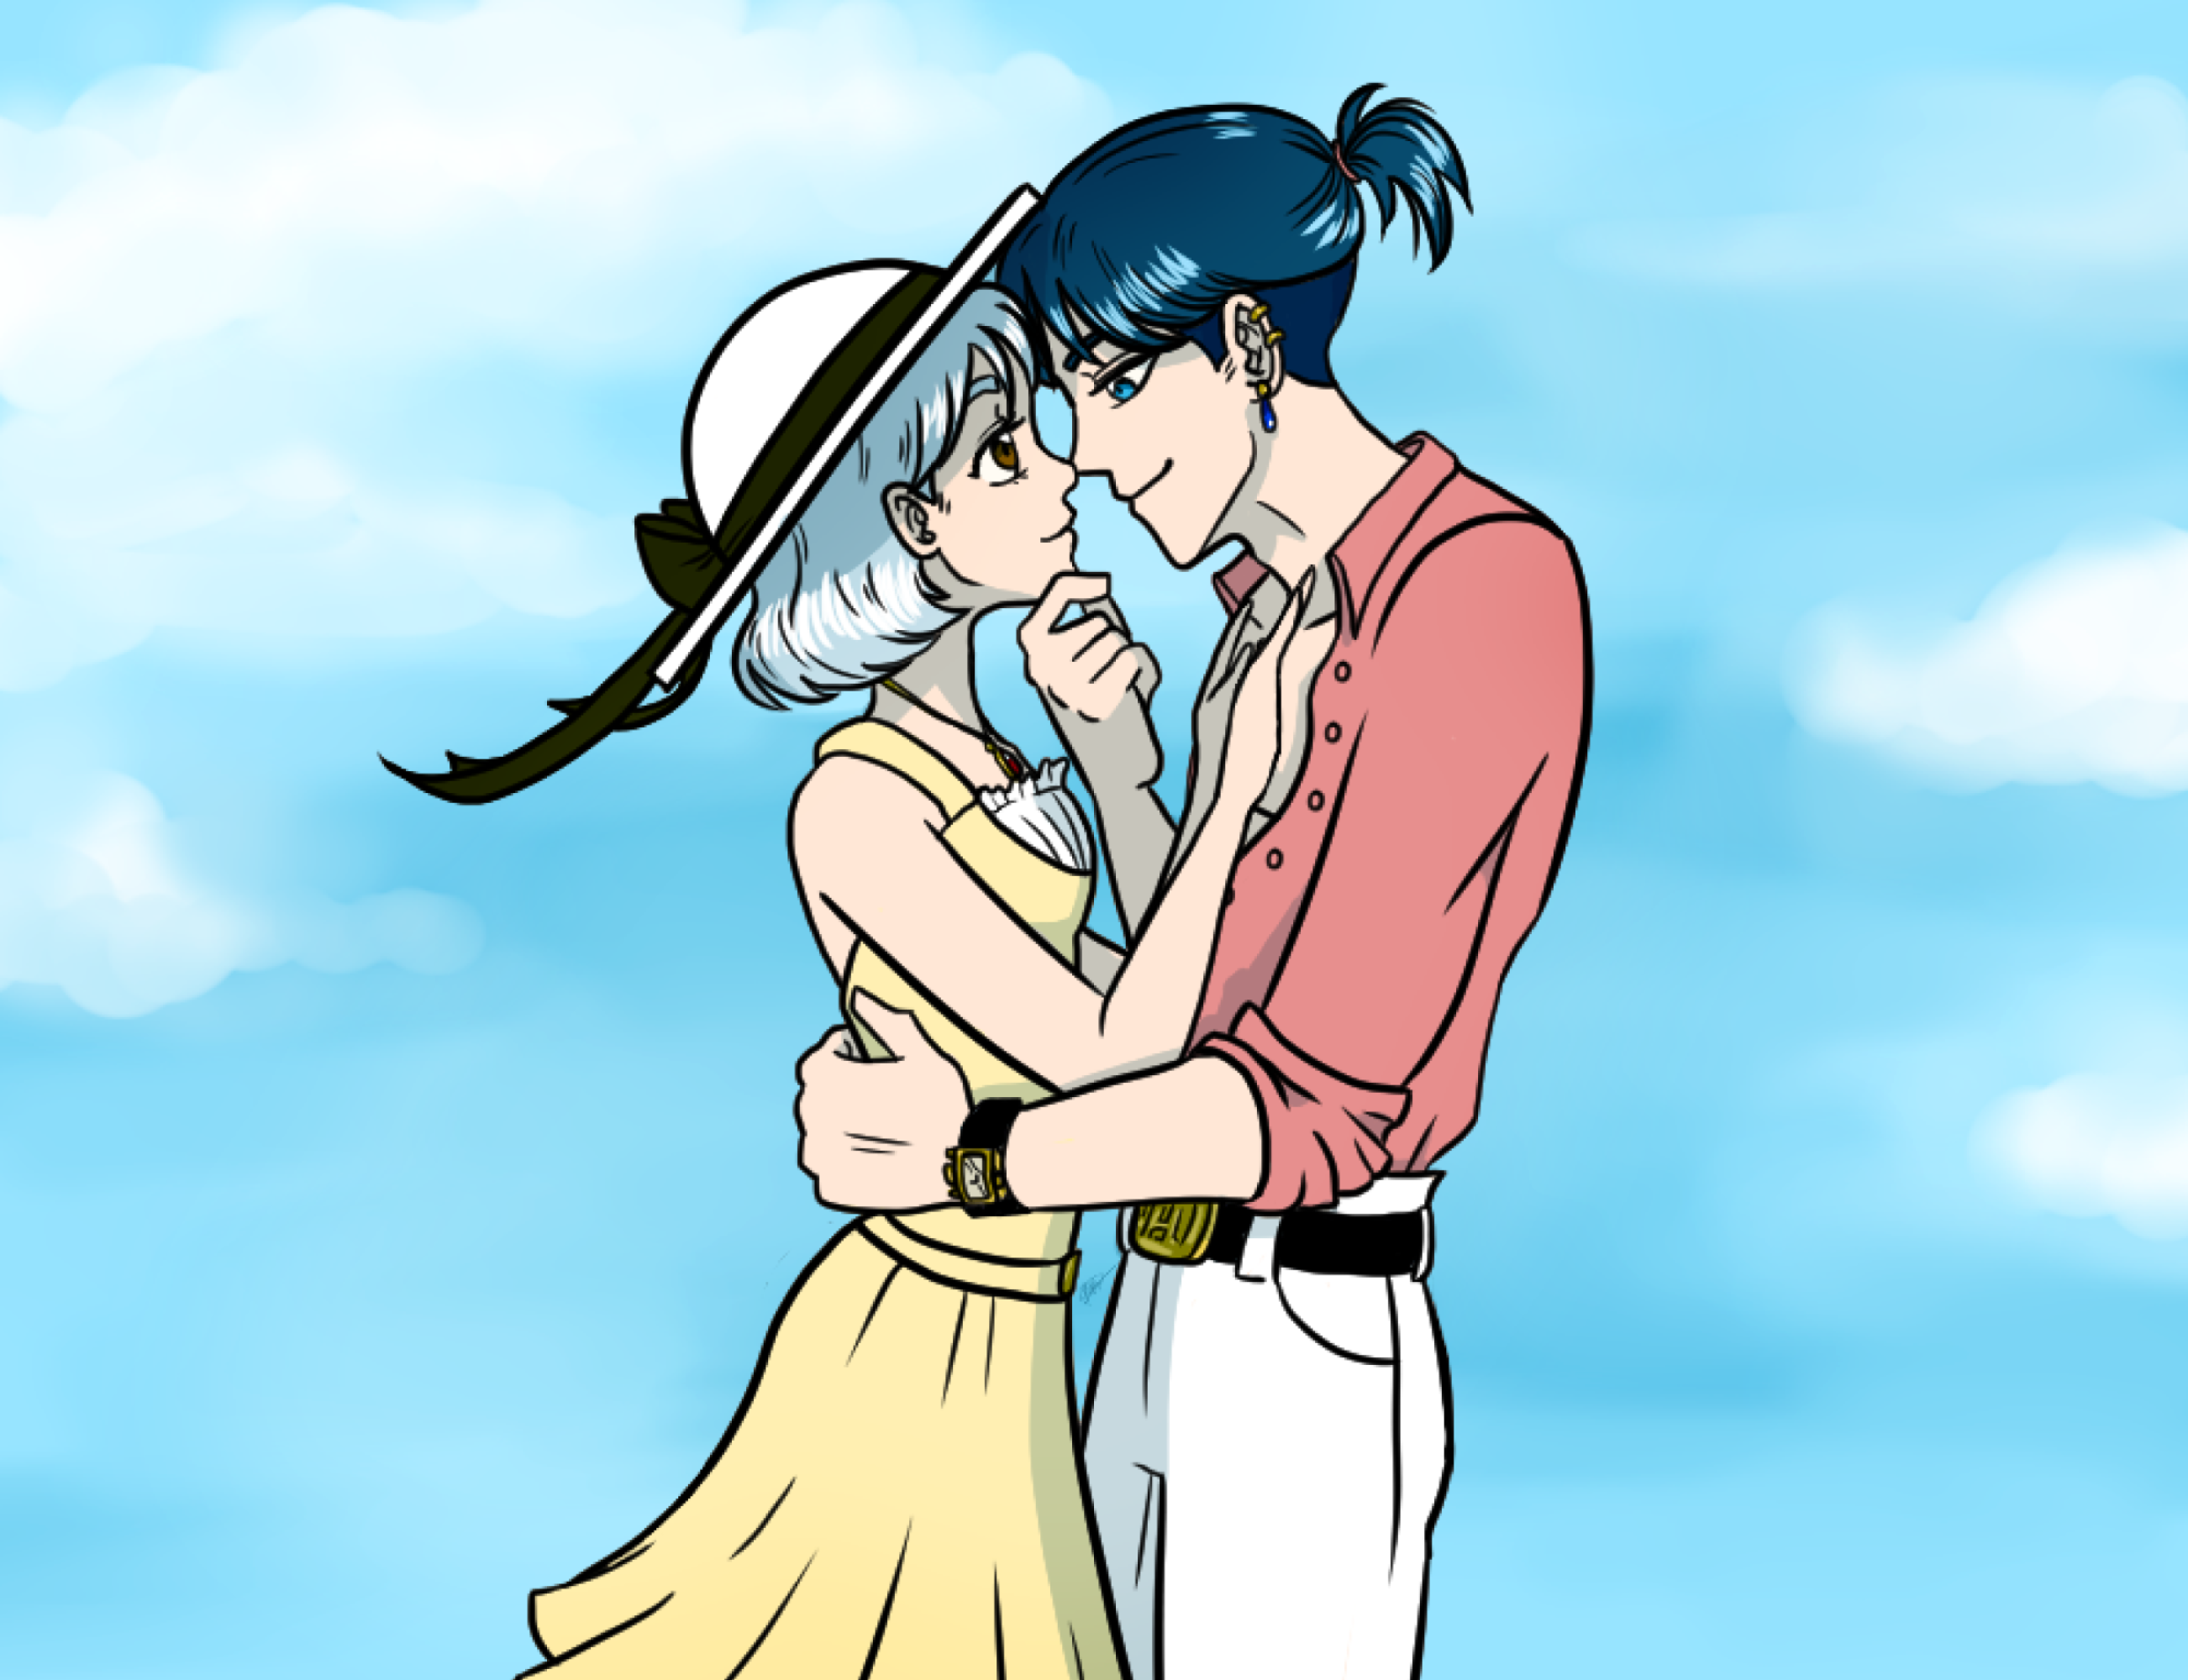 Sophie and Howl from Howl's Moving Castle wearing modern clothing drawn in my anime and manga inspired art style.